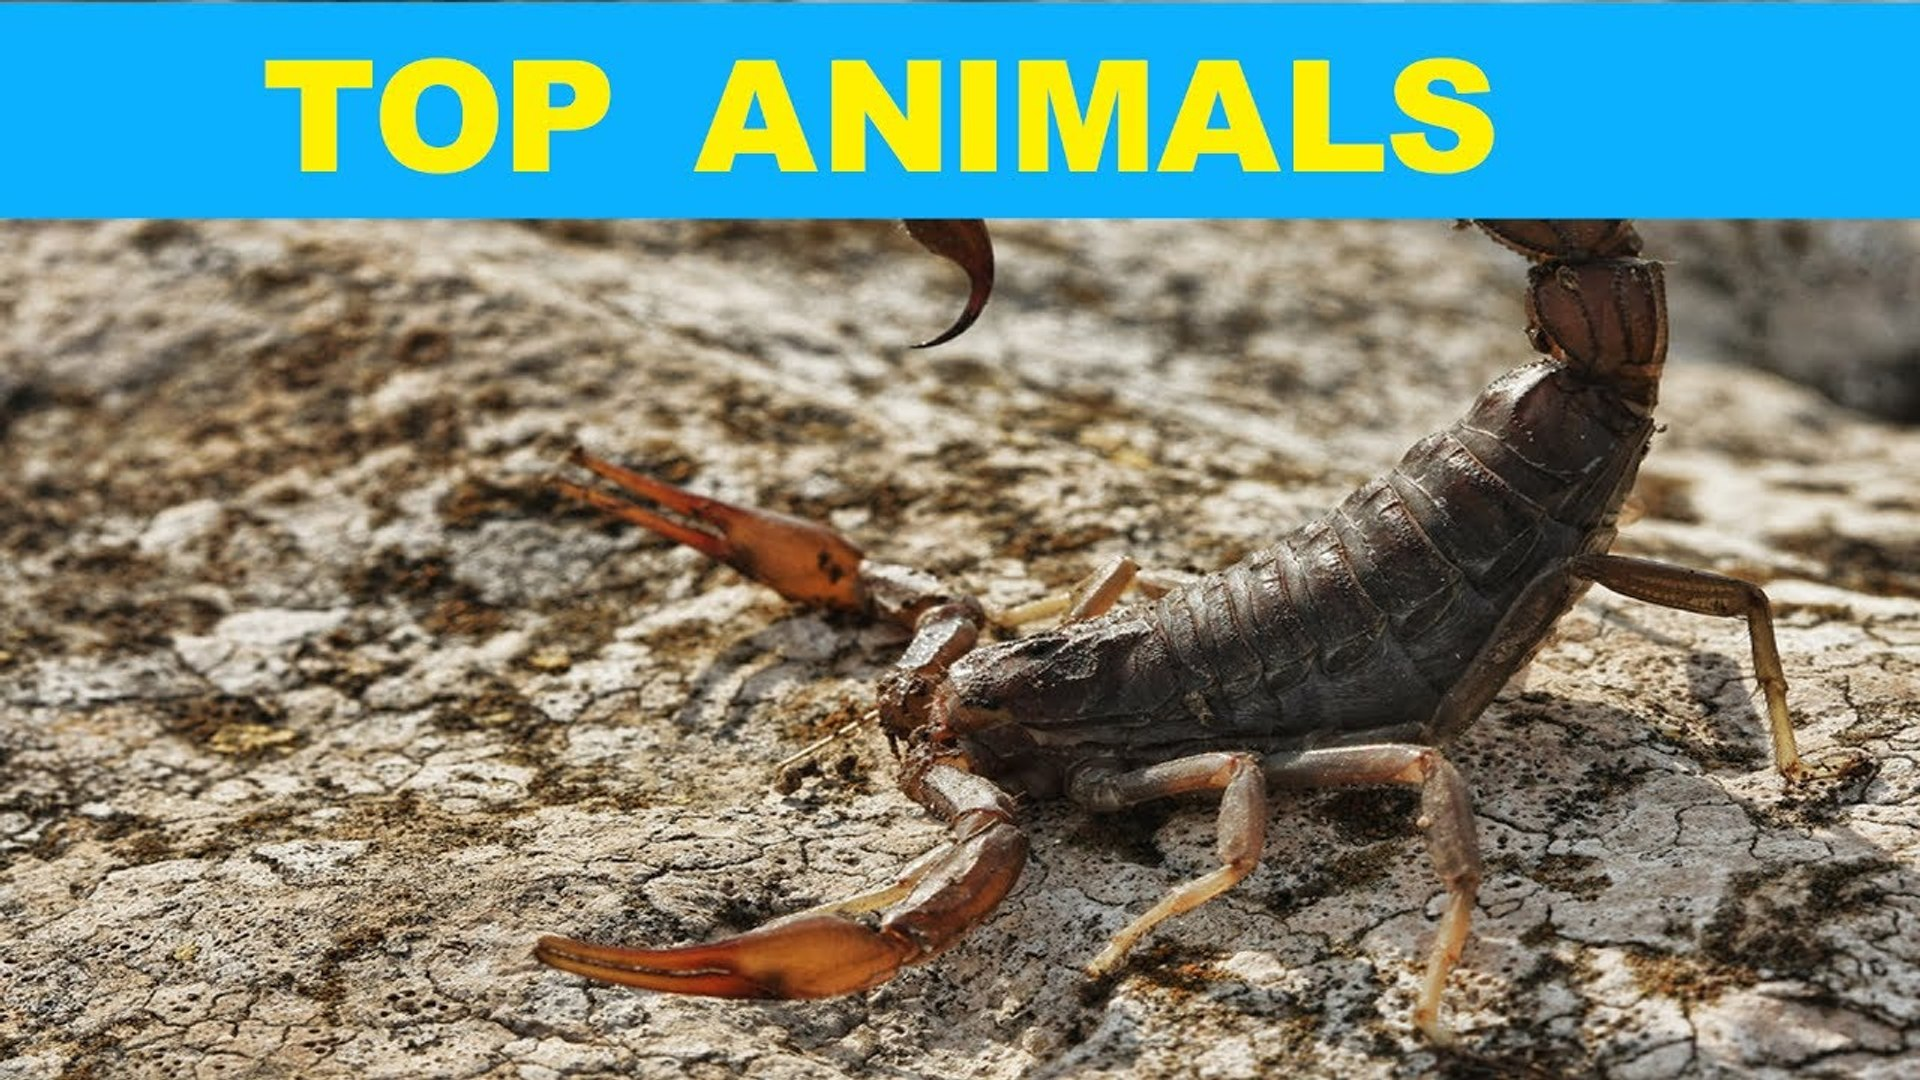 Three of the Most Dangerous Scorpions in the World   TOP ANIMAL